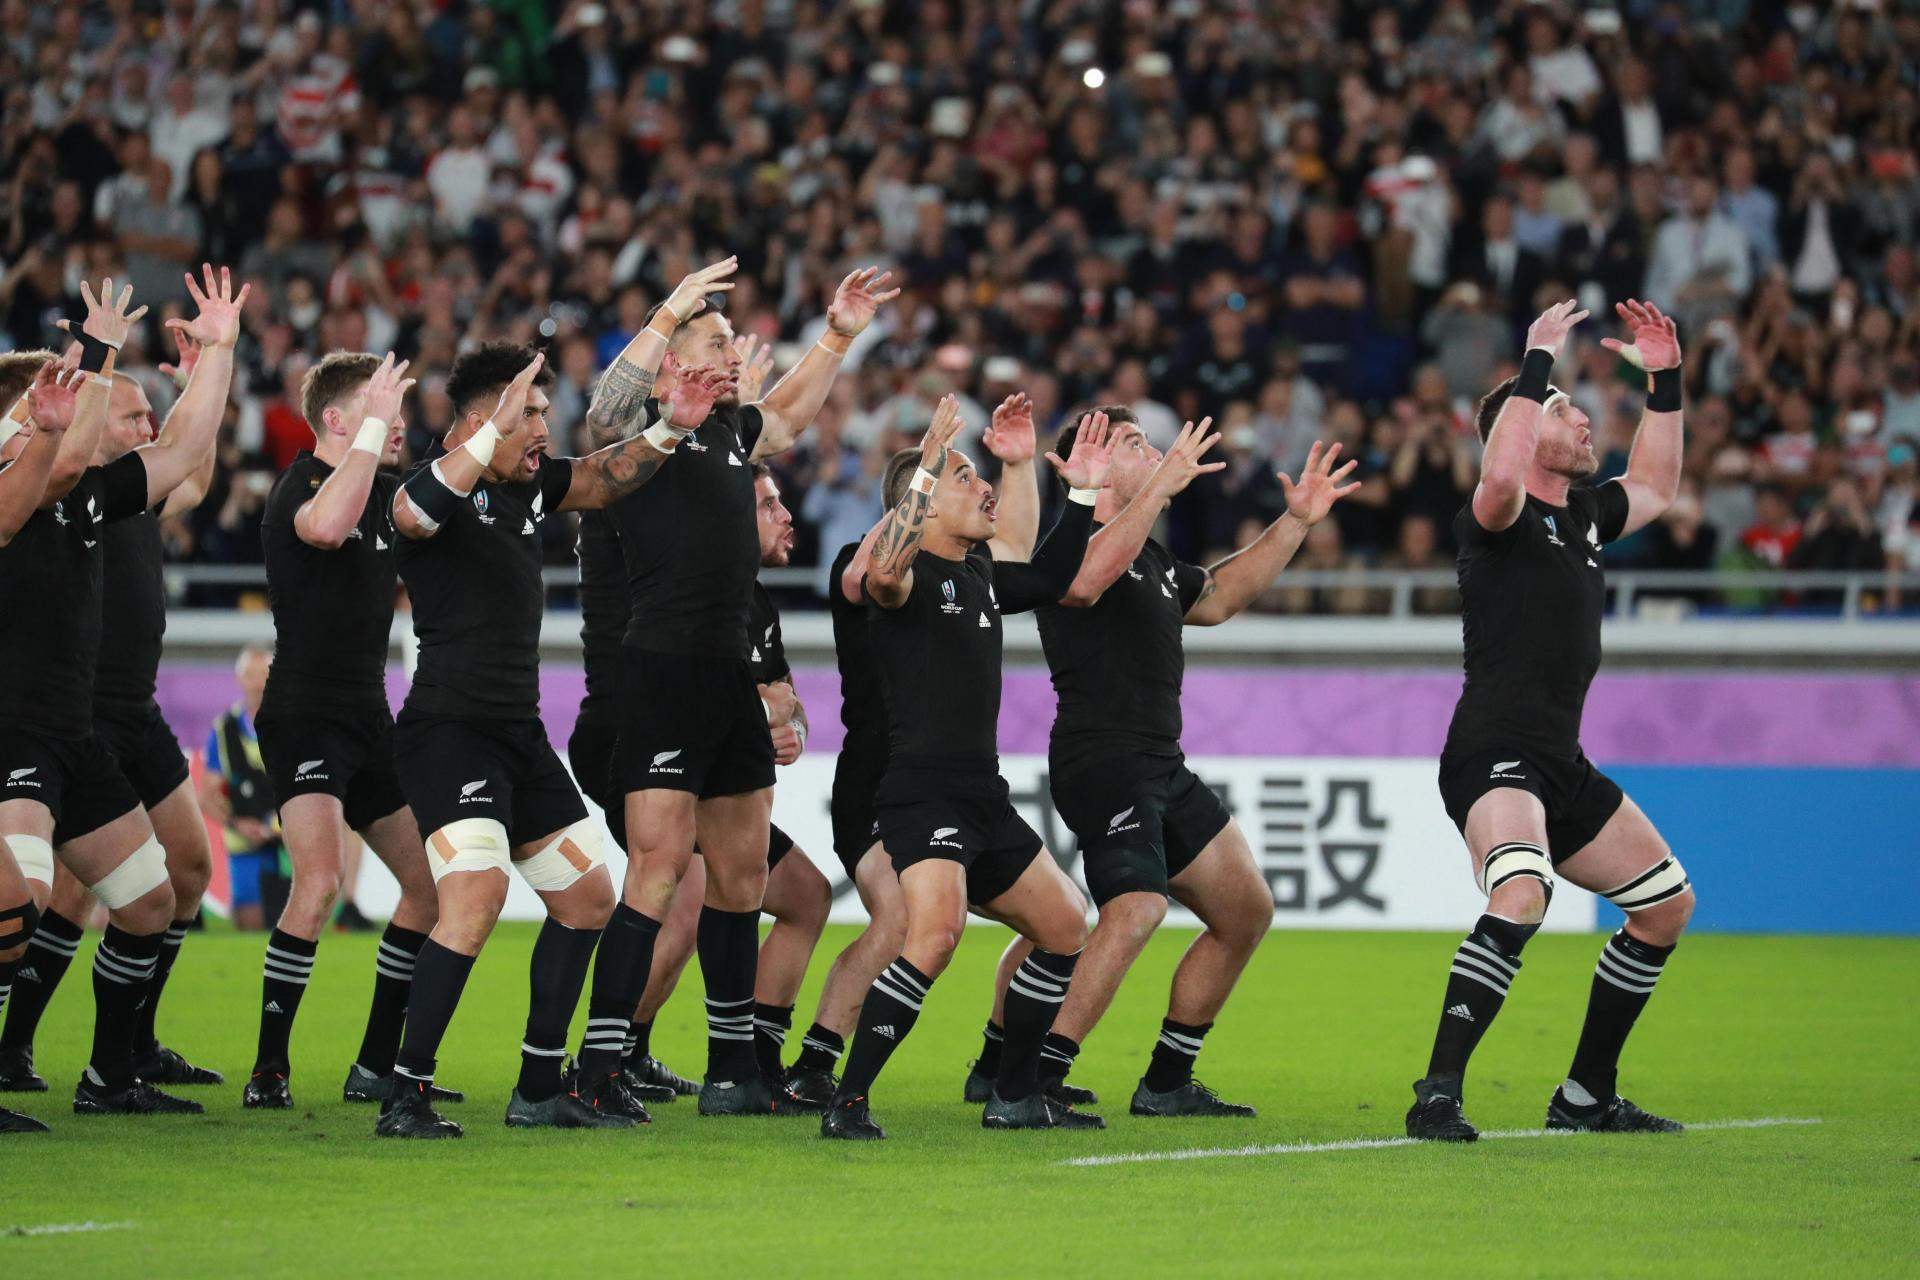 Watch Haka Challenges Seven Top Responses To The All Blacks Ritual